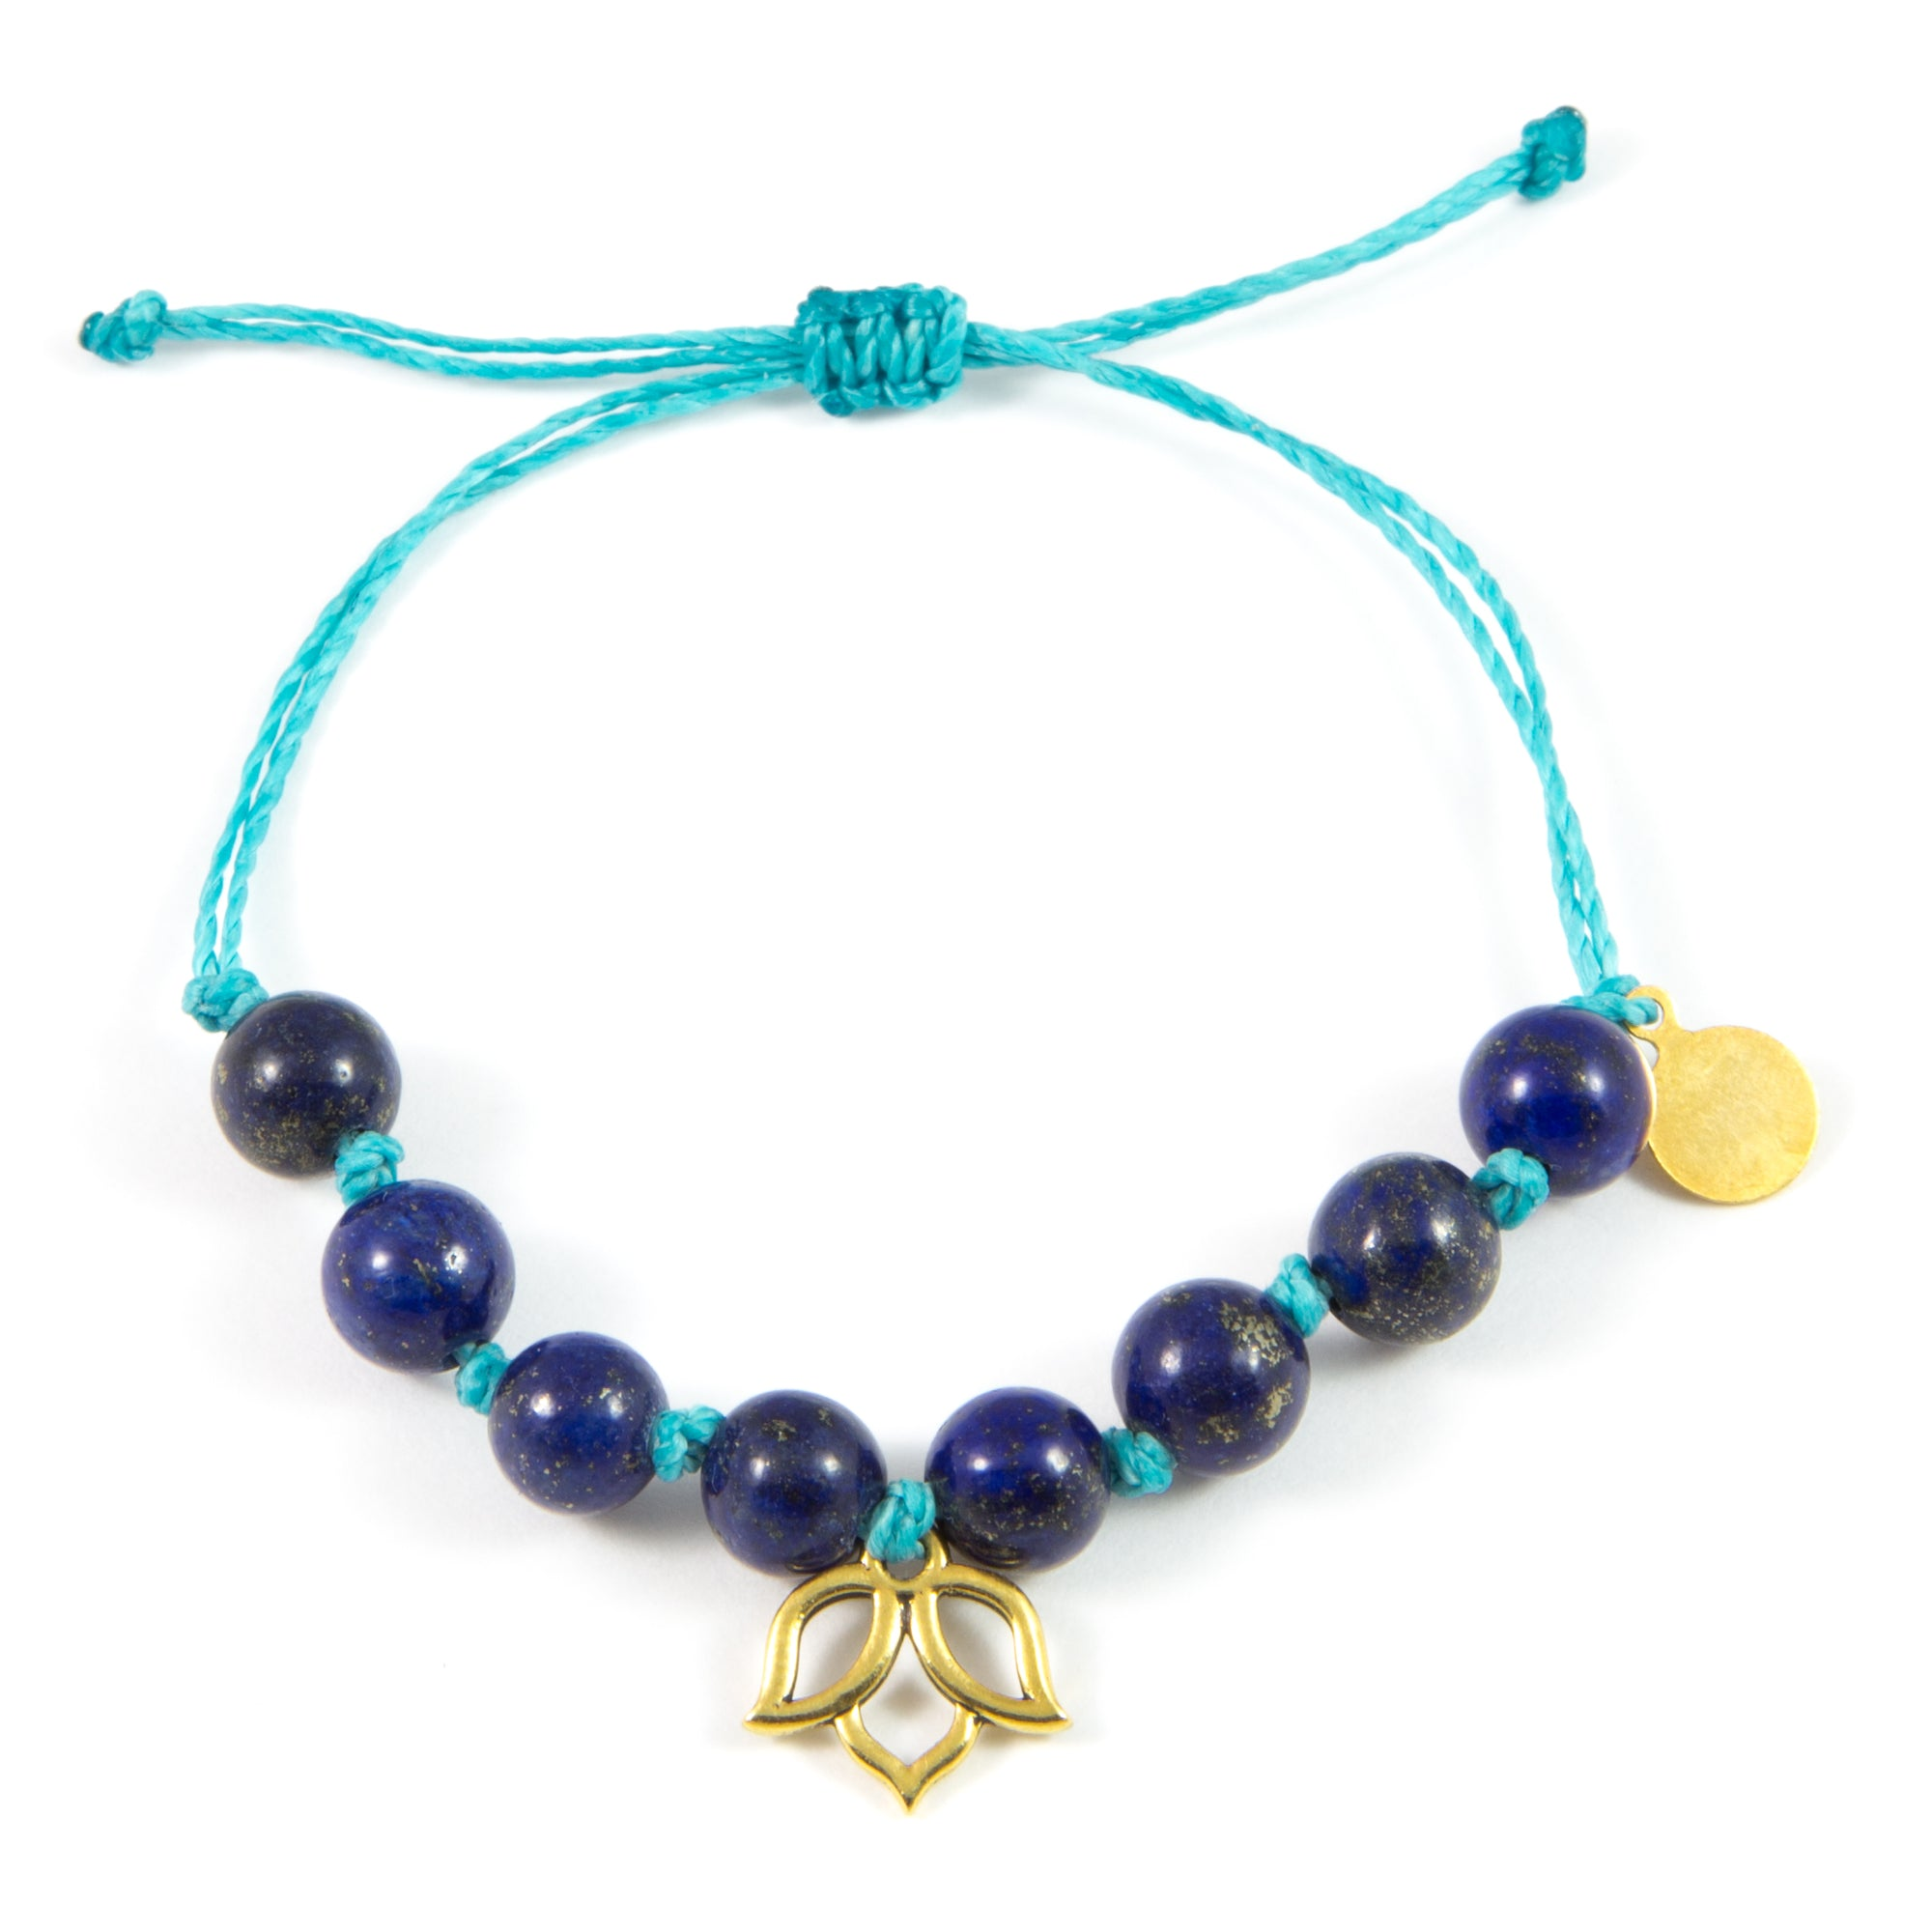 Teal & Blue Lapis Lotus Flower Bracelet